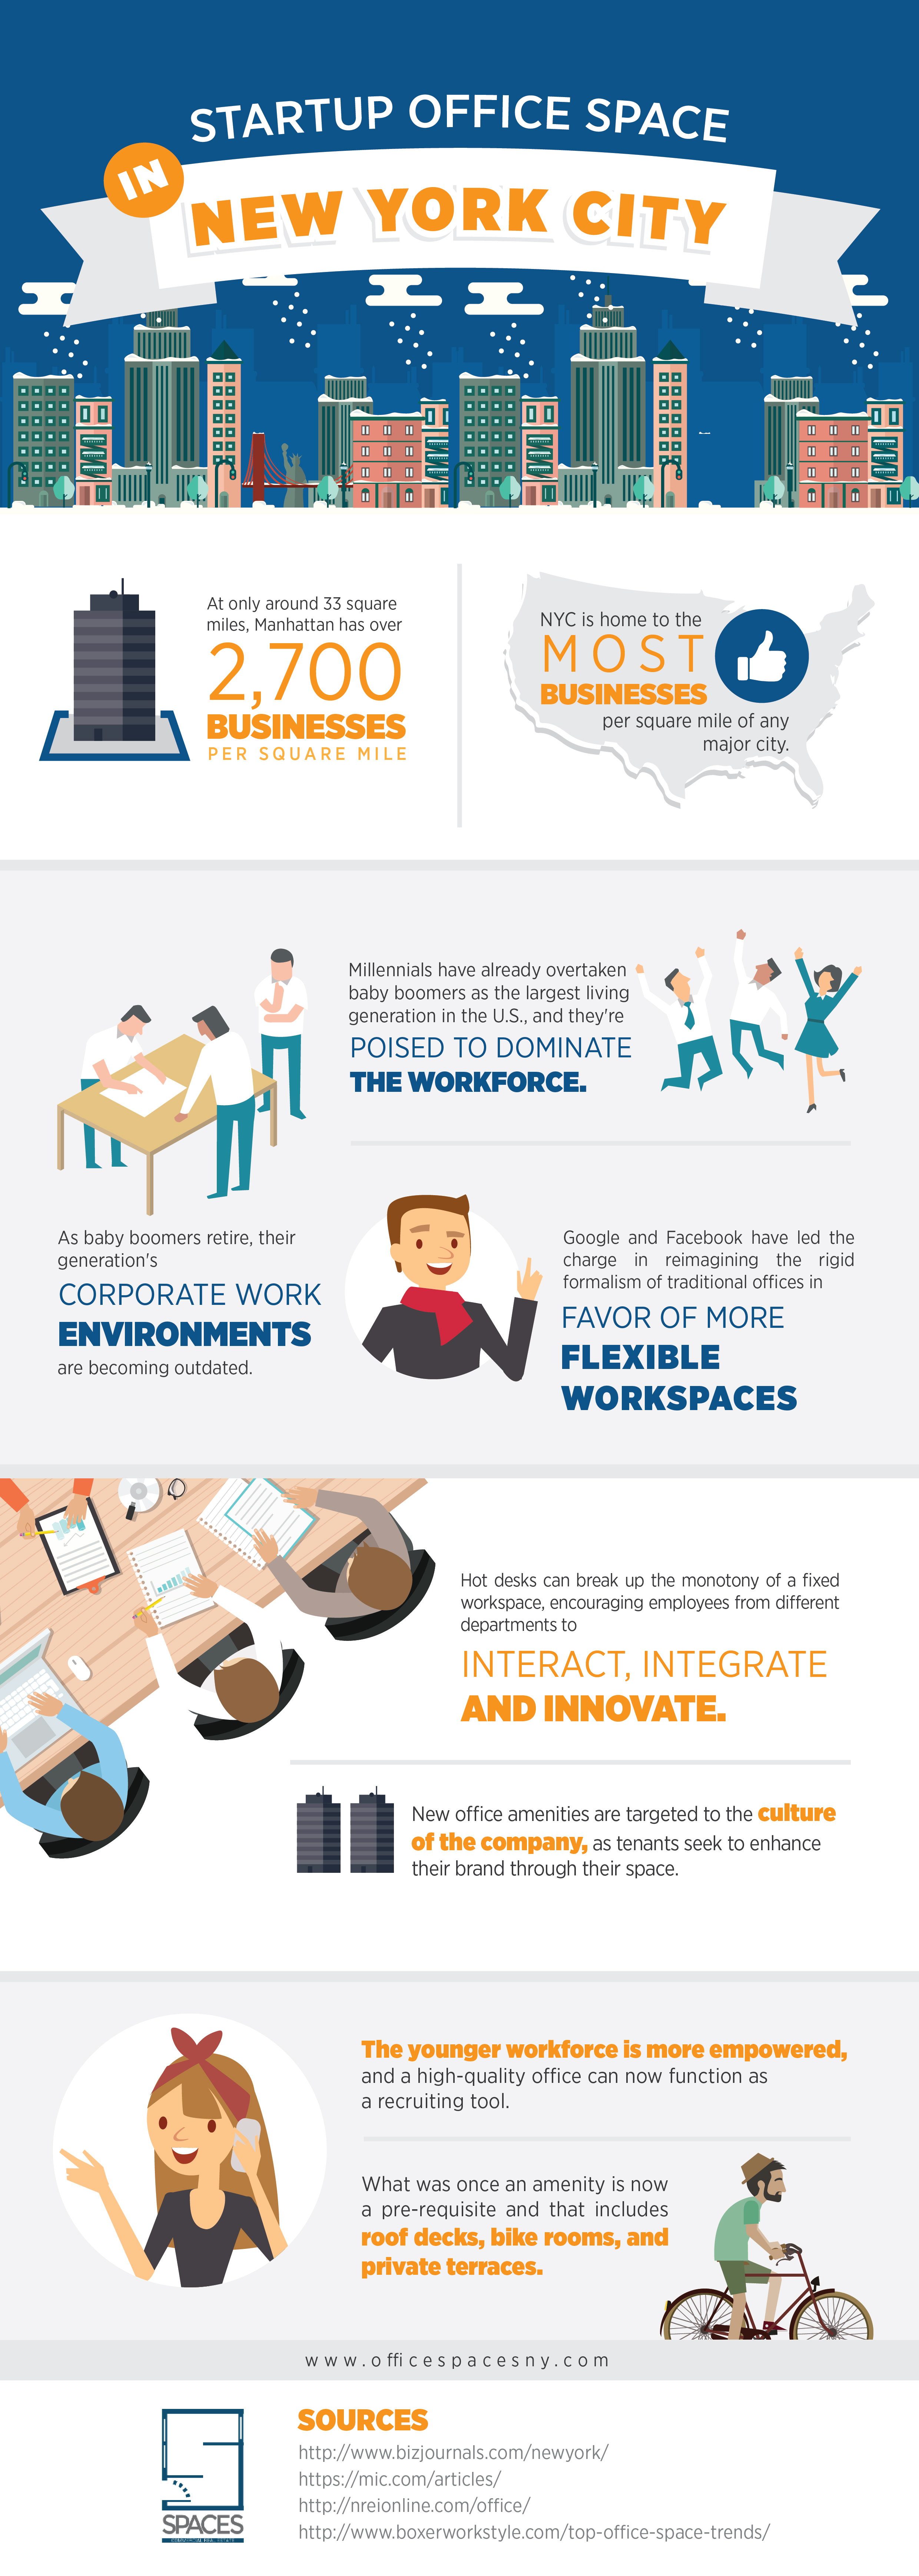 index-01 How To Find The Perfect NYC Office Space For Startups